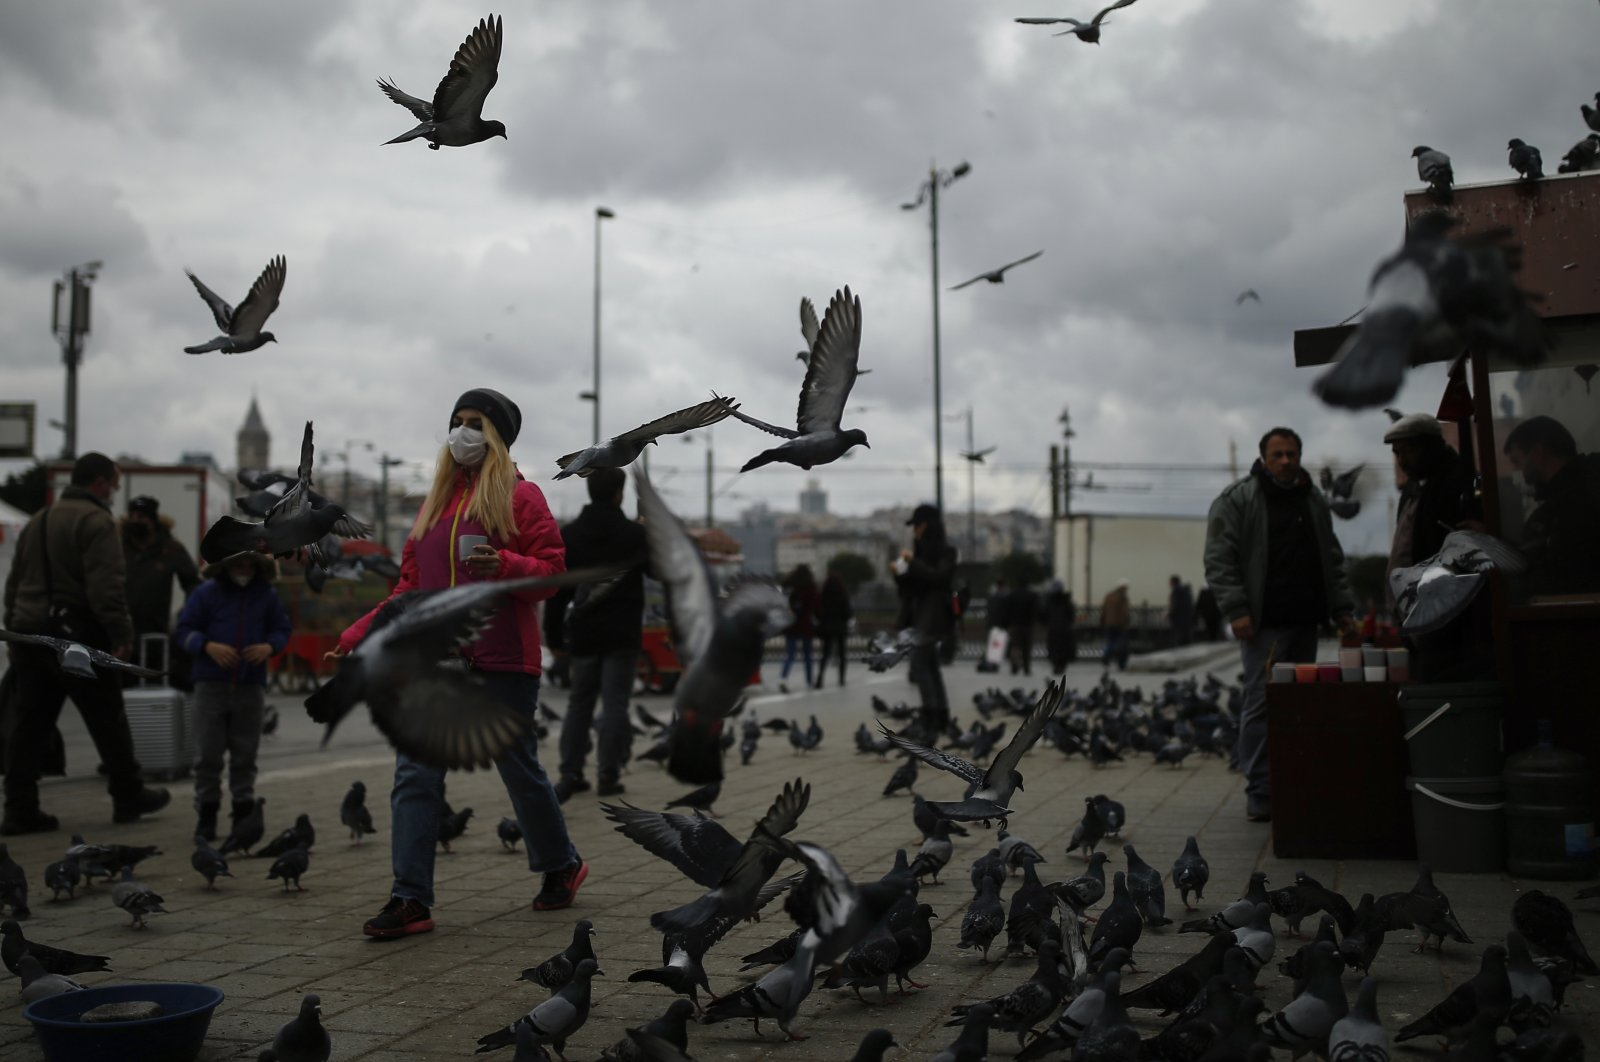 People, most wearing protective face masks to help protect against the spread of coronavirus, walk through the Eminonu Market by the Golden Horn in Istanbul, Nov. 10, 2020. (AP Photo)